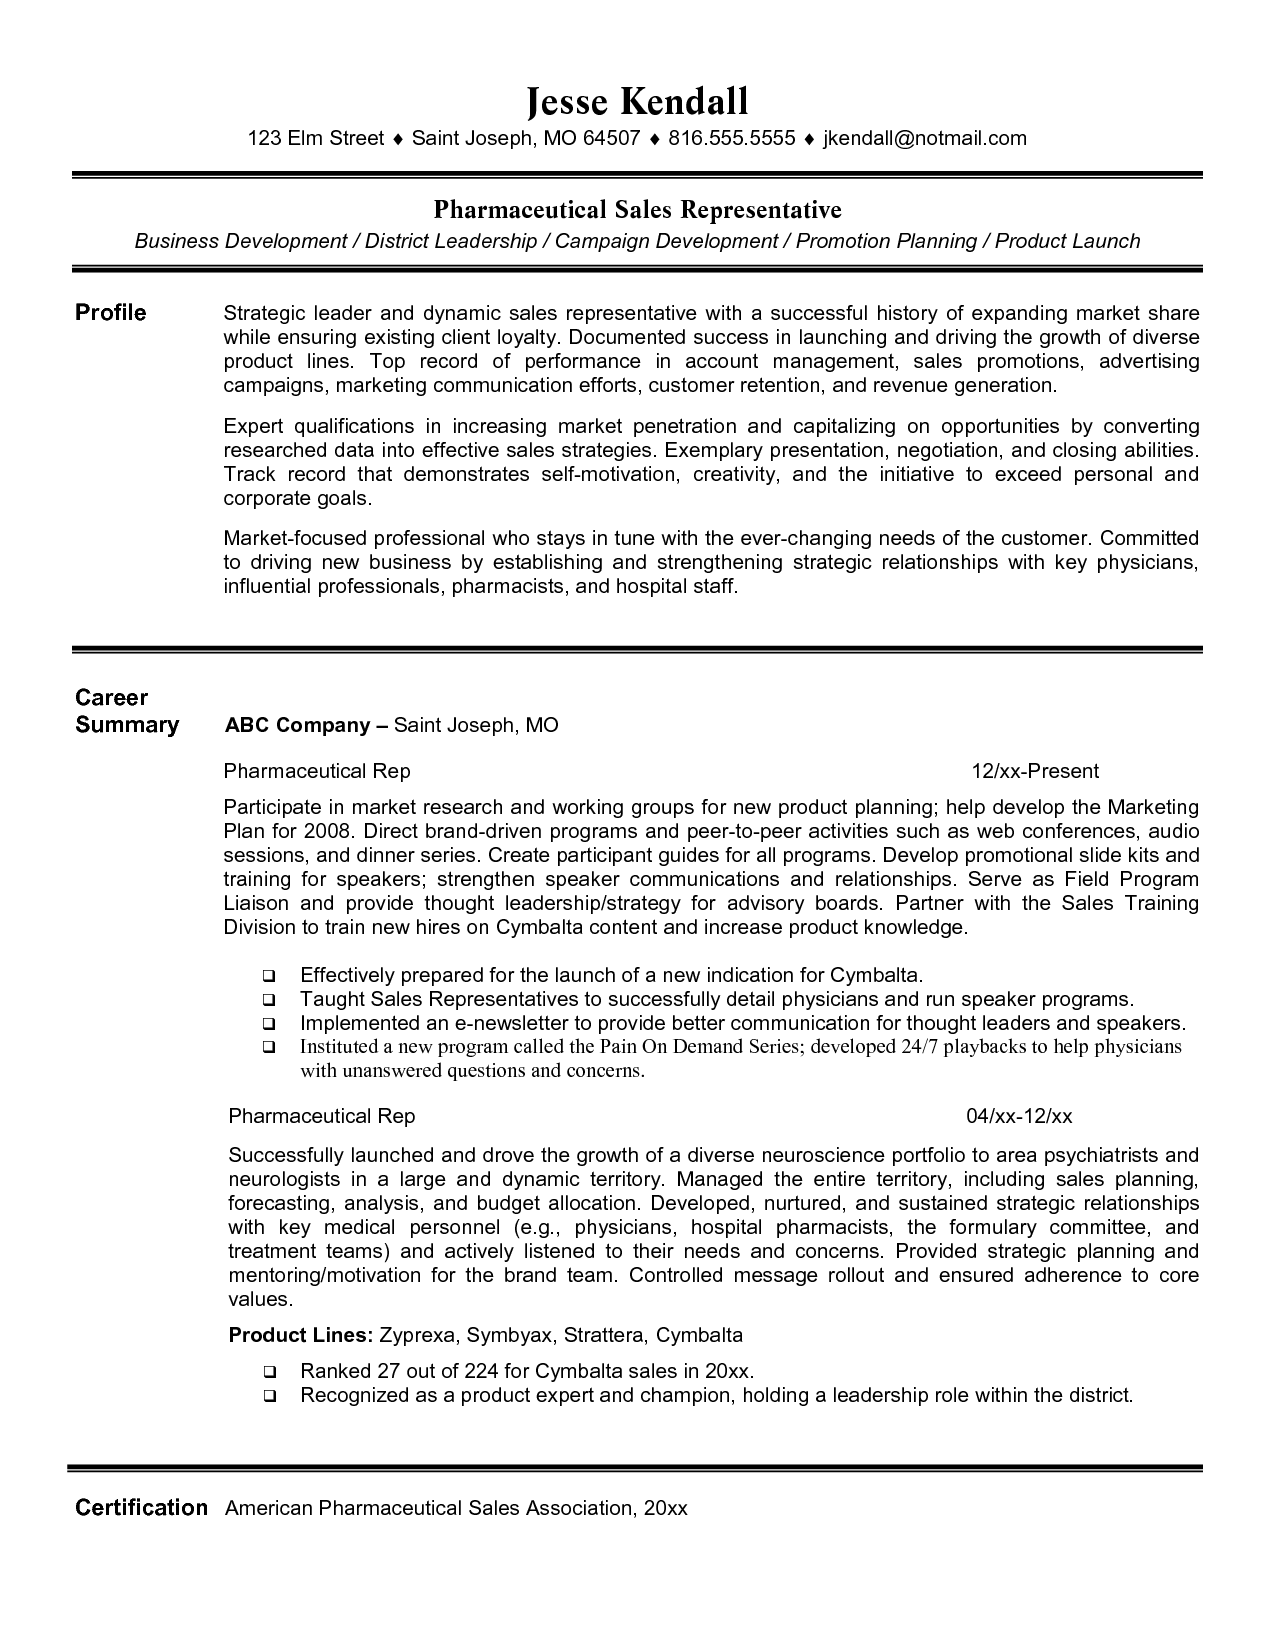 Pharmaceutical Sales Rep Resume Sample entry level pharmaceutical ...